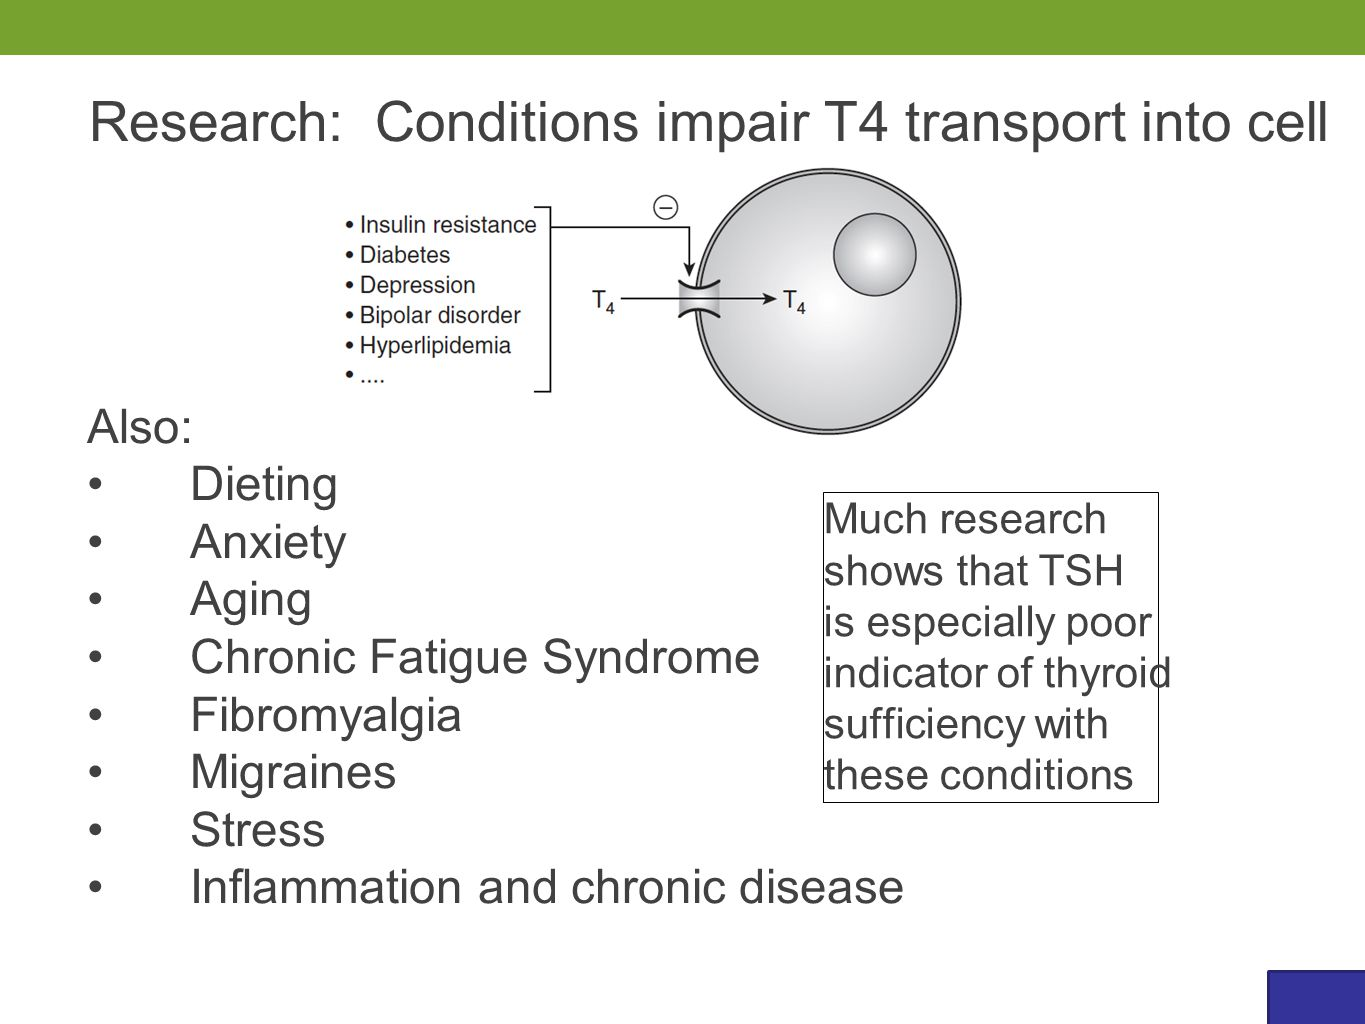 Also: Dieting Anxiety Aging Chronic Fatigue Syndrome Fibromyalgia Migraines Stress Inflammation and chronic disease Research: Conditions impair T4 transport into cell Much research shows that TSH is especially poor indicator of thyroid sufficiency with these conditions